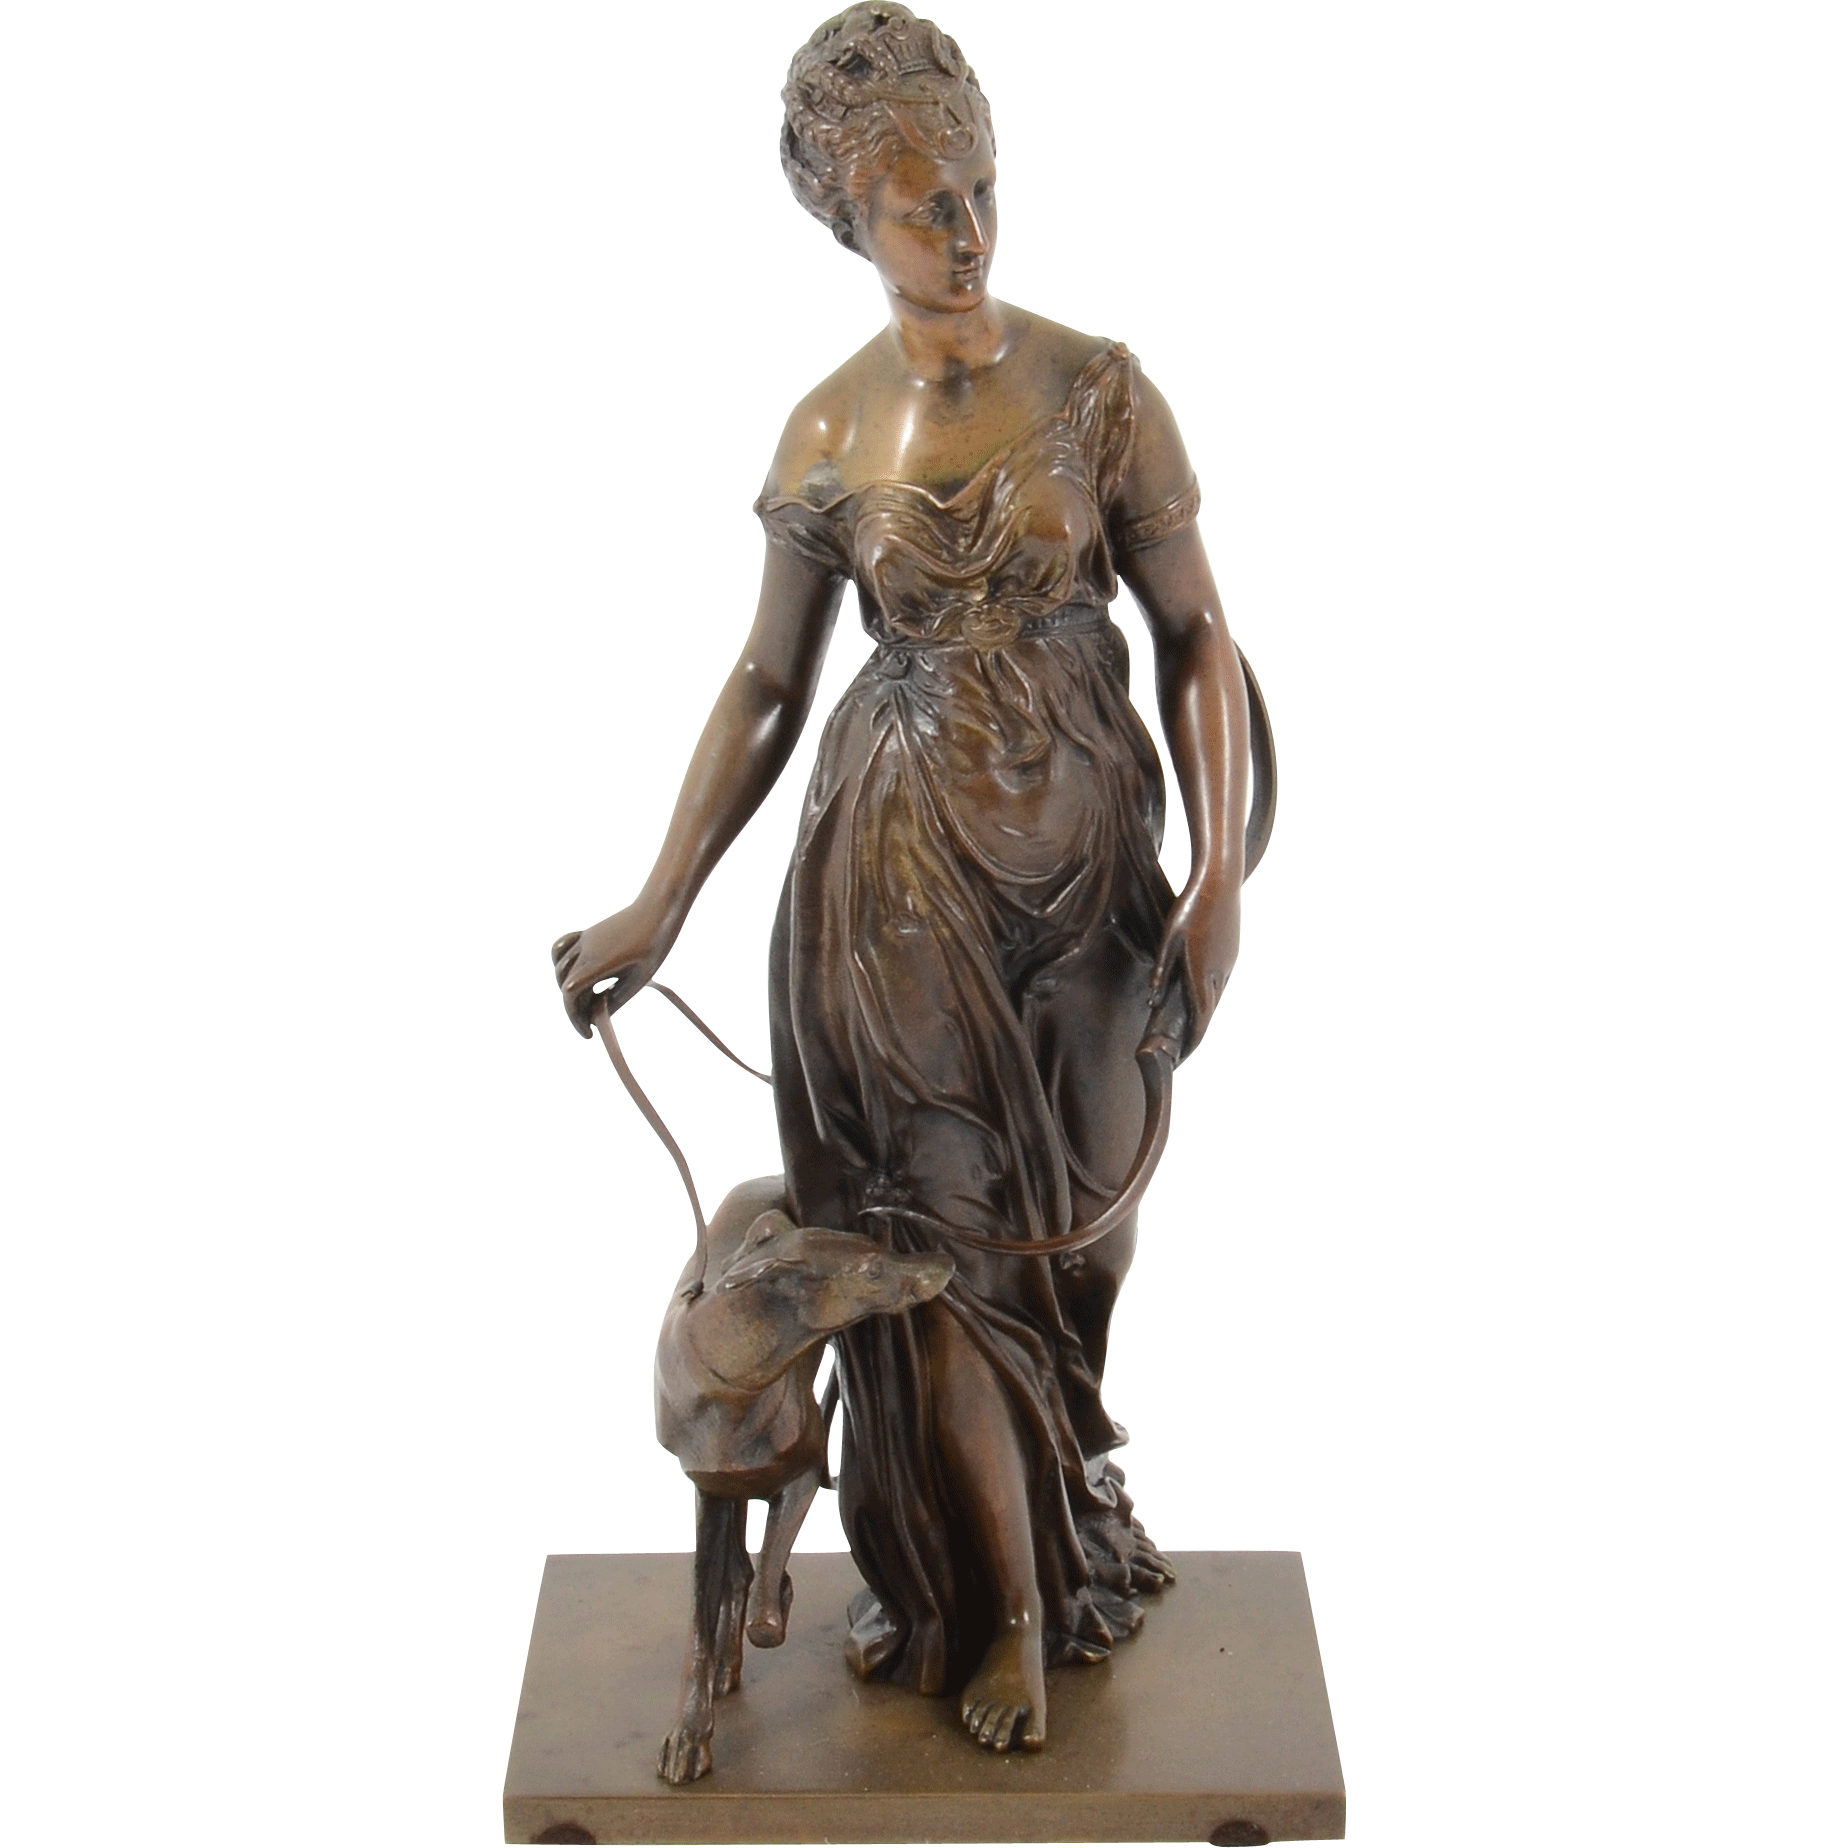 European Bronze Sculpture of Diana the Huntress